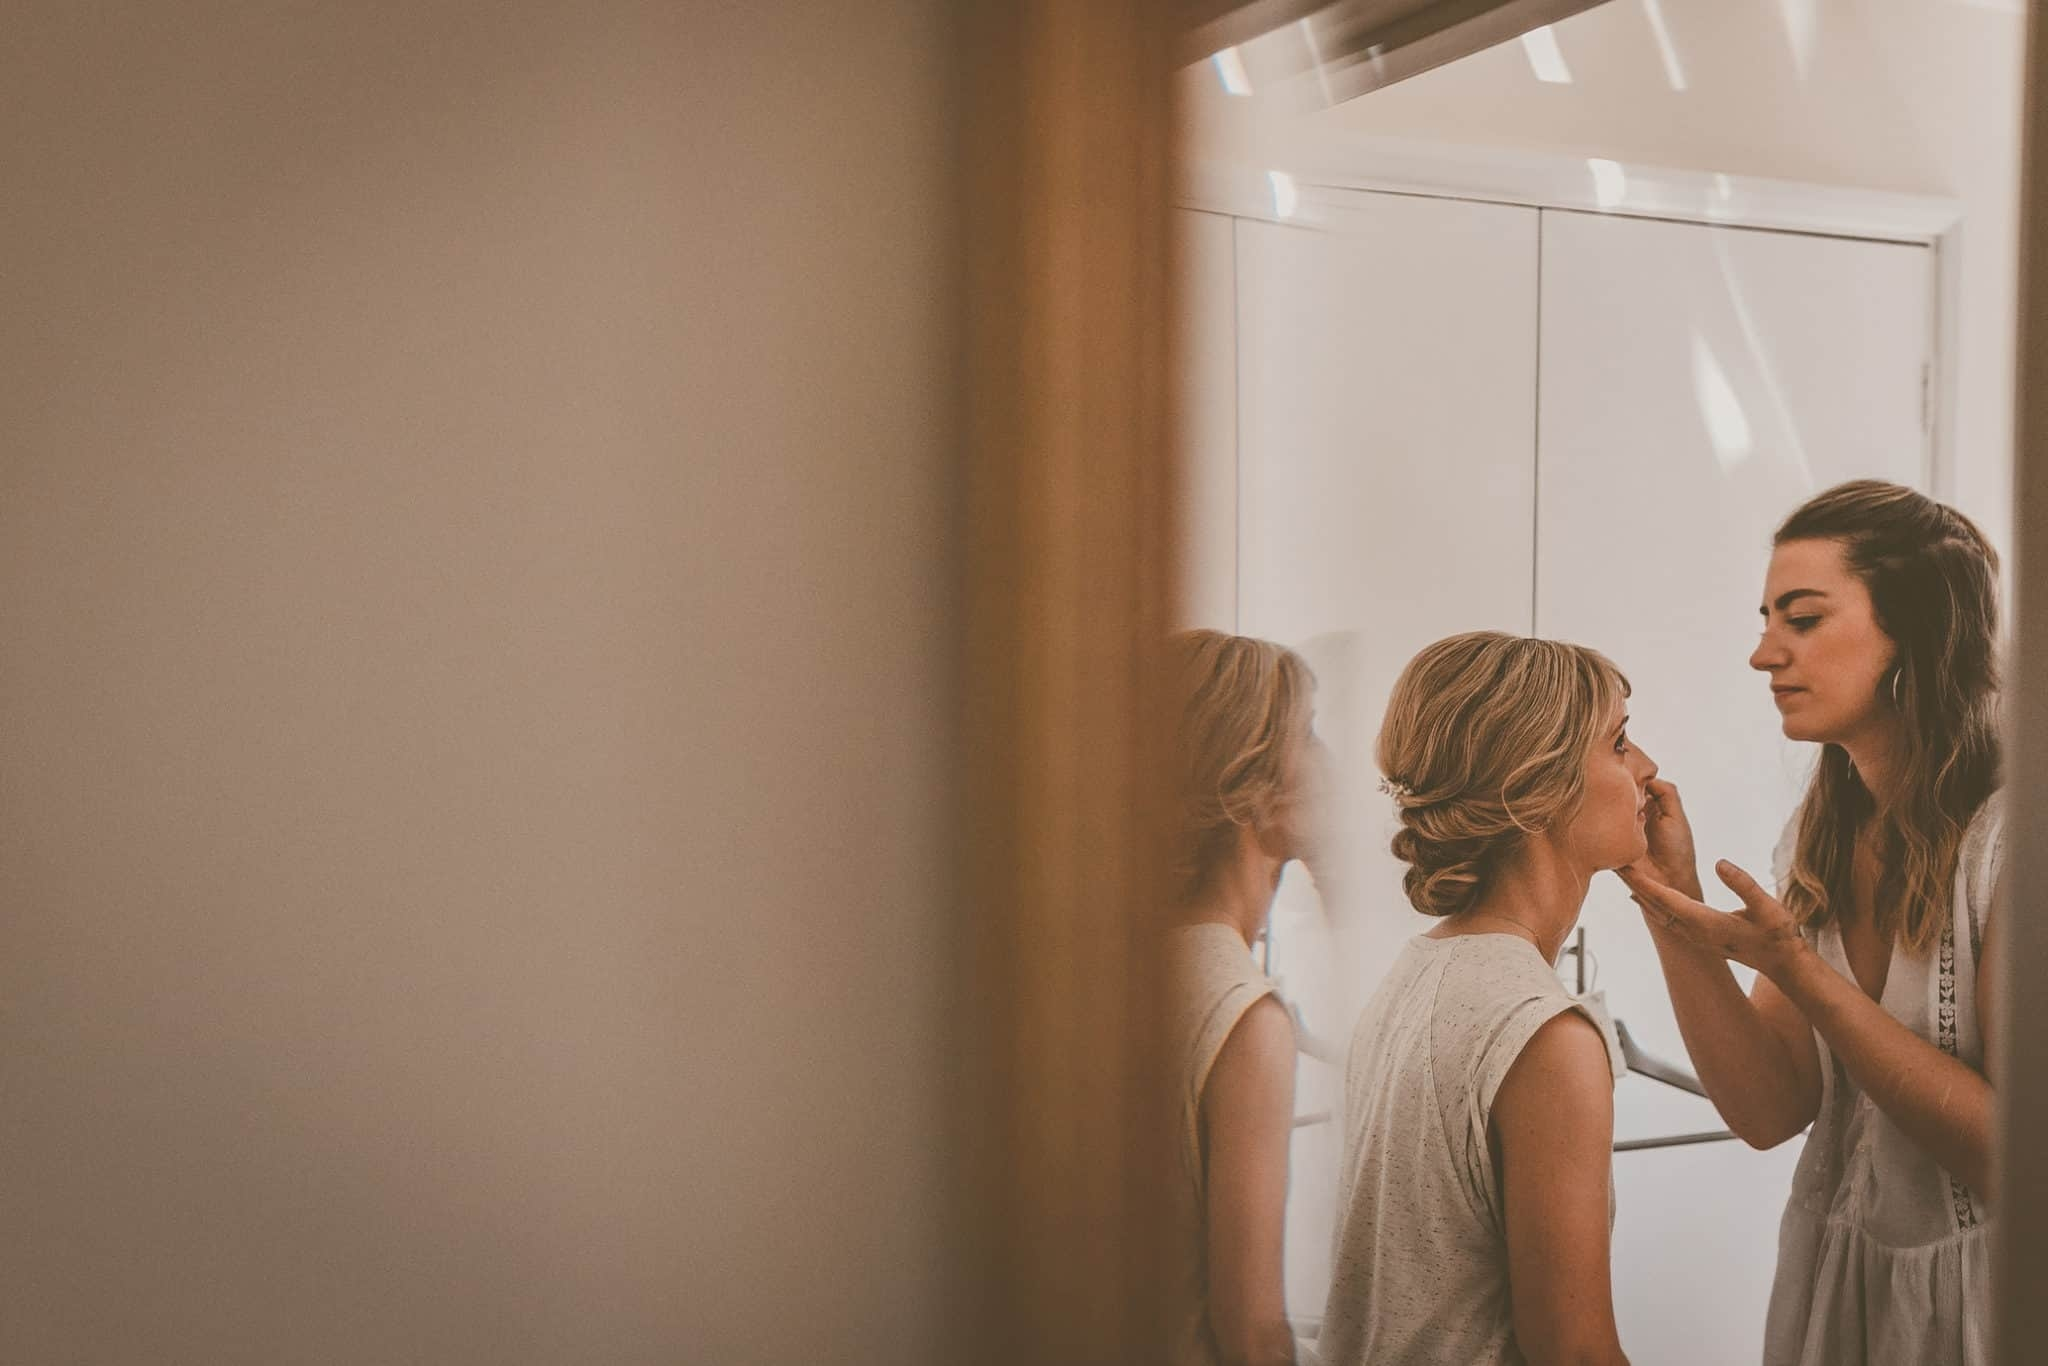 makeup artist applying makeup to bride with loose updo